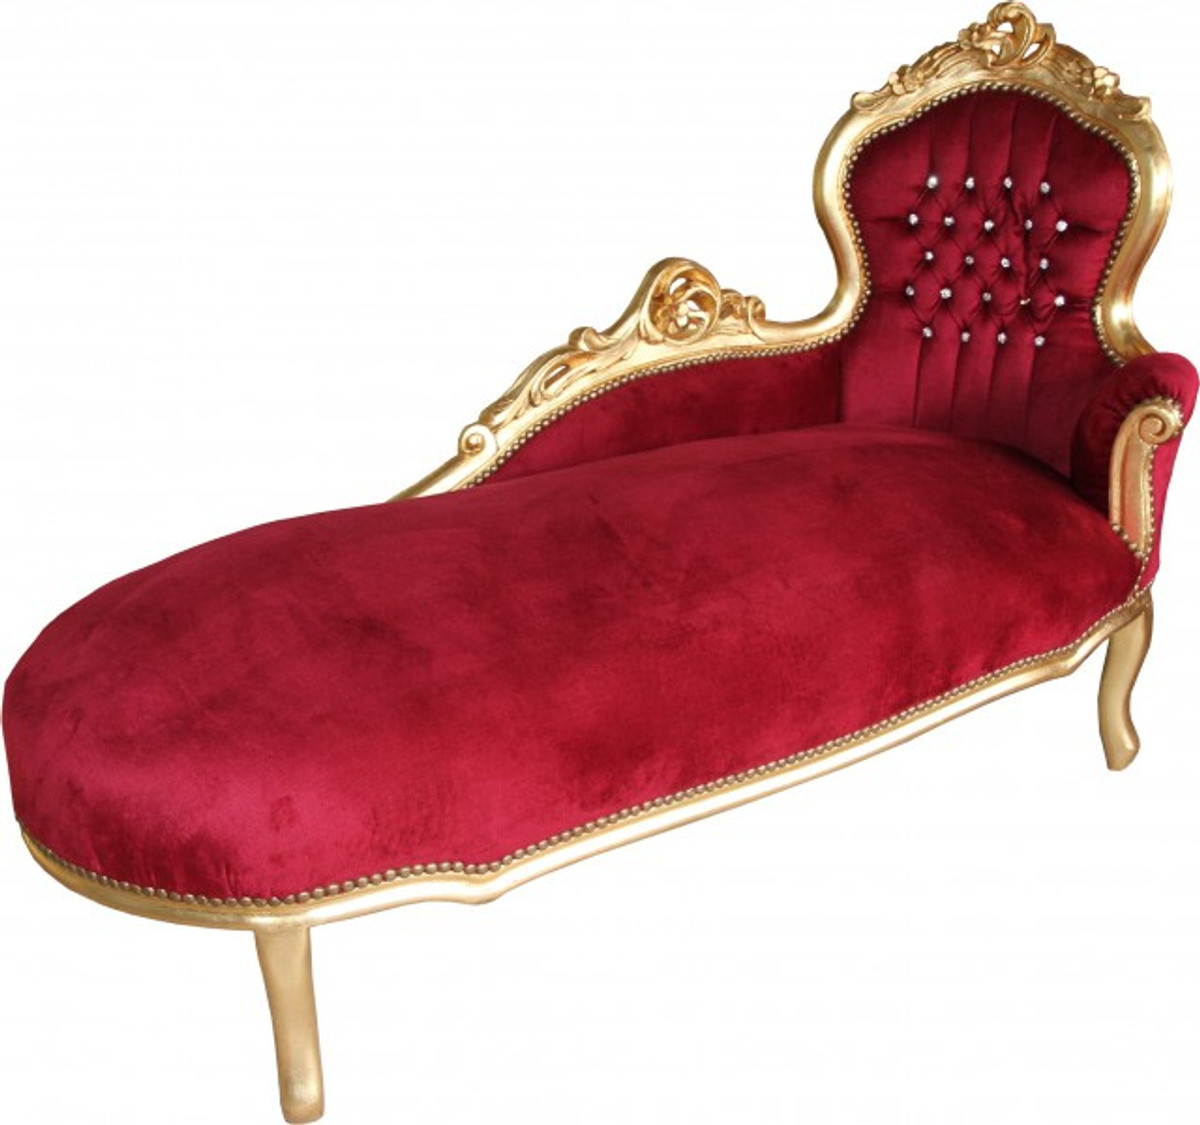 Casa padrino baroque chaise longue king bordeaux gold for Casa chaise longue